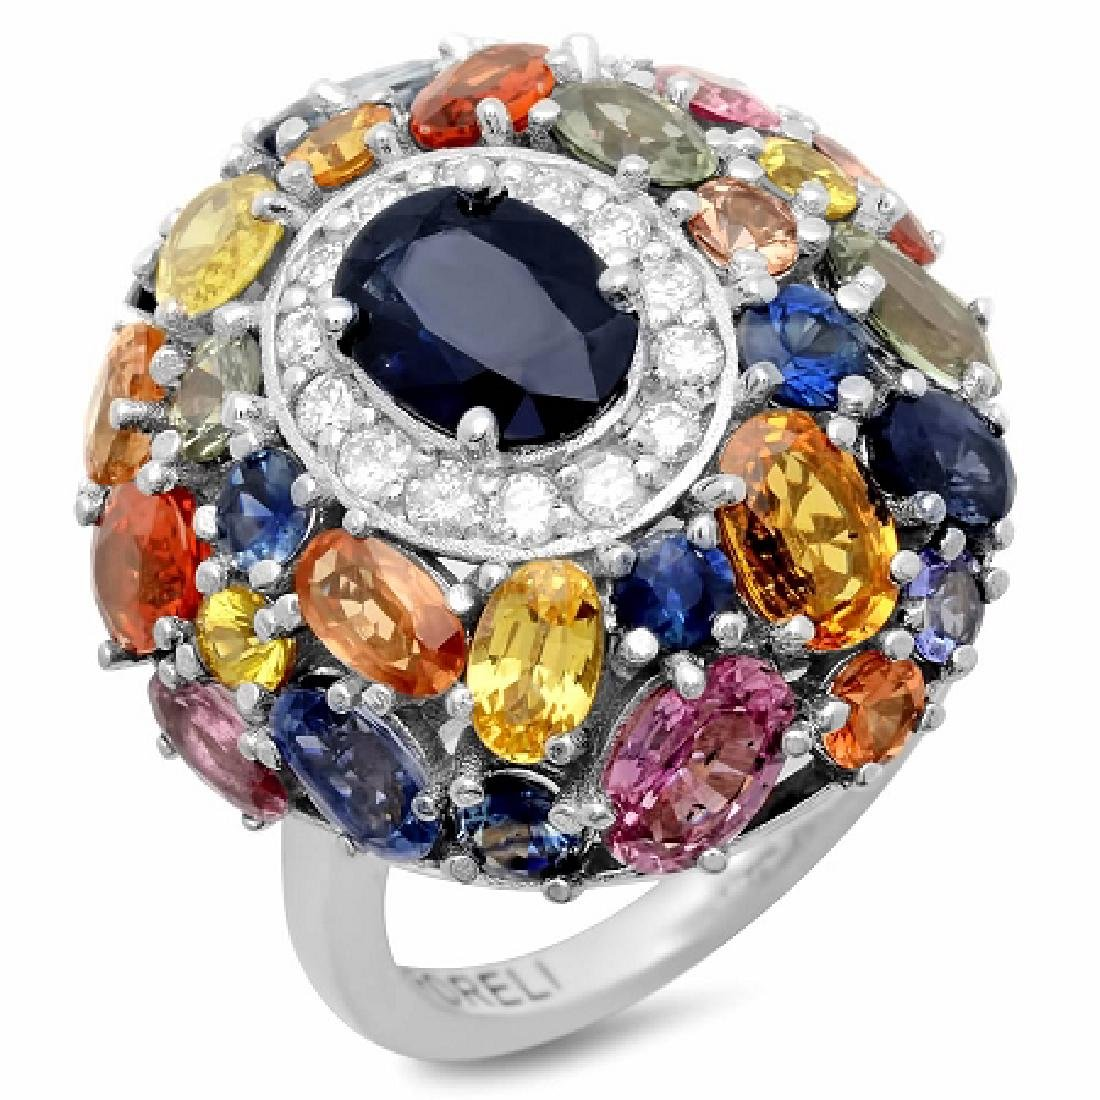 10.99 Carat Natural Sapphire 18K Solid White Gold